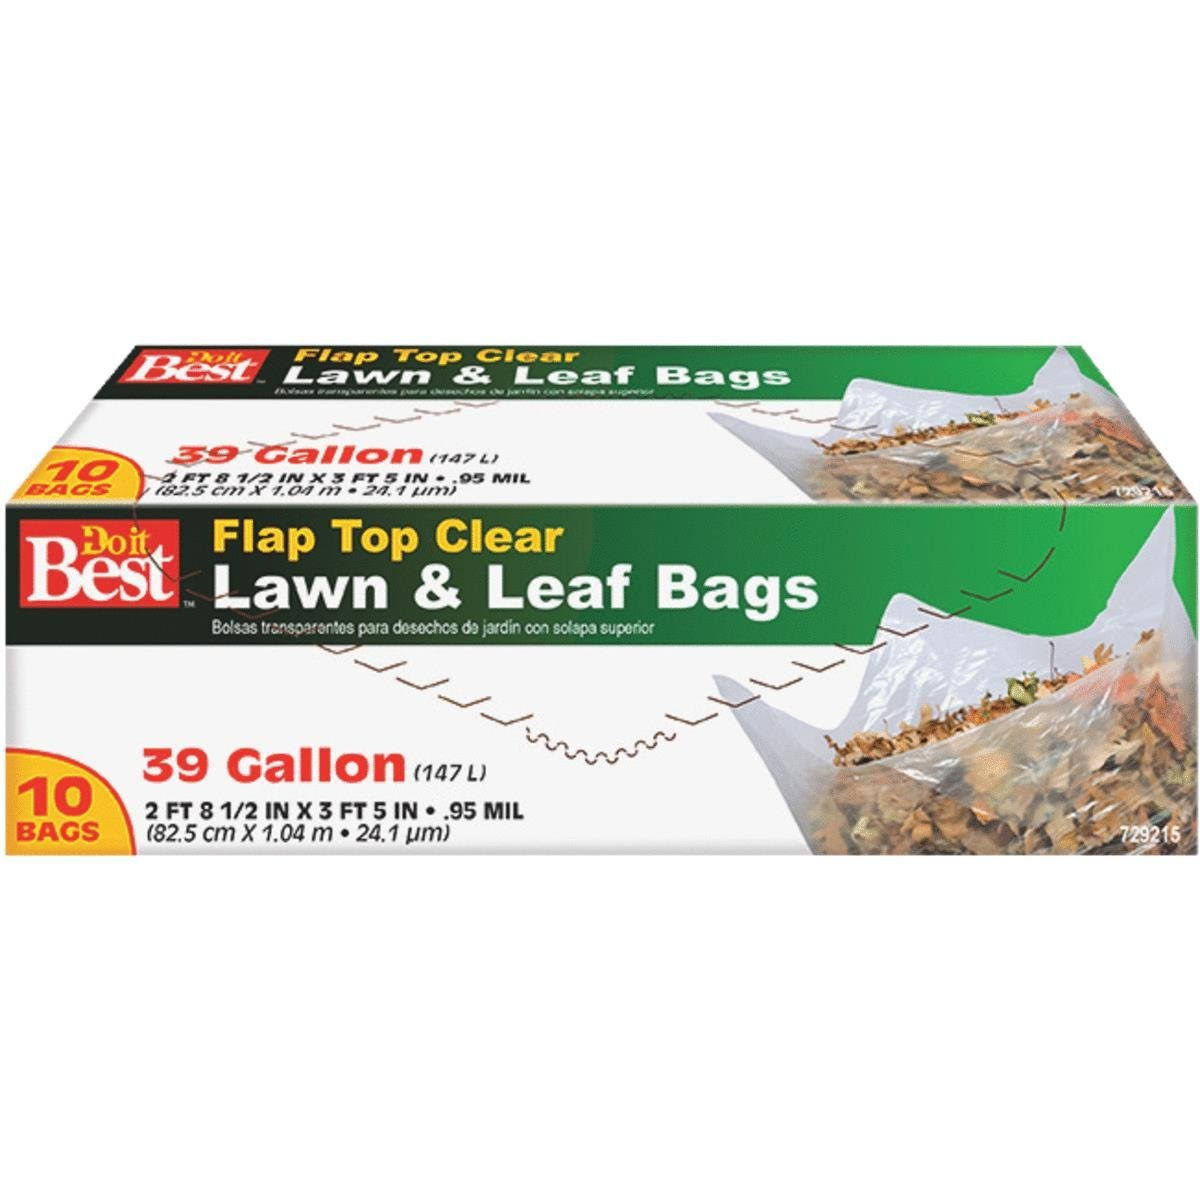 Do It Best Twitst Tie Clear Lawn & Leaf Bags - 39gal, 10pcs